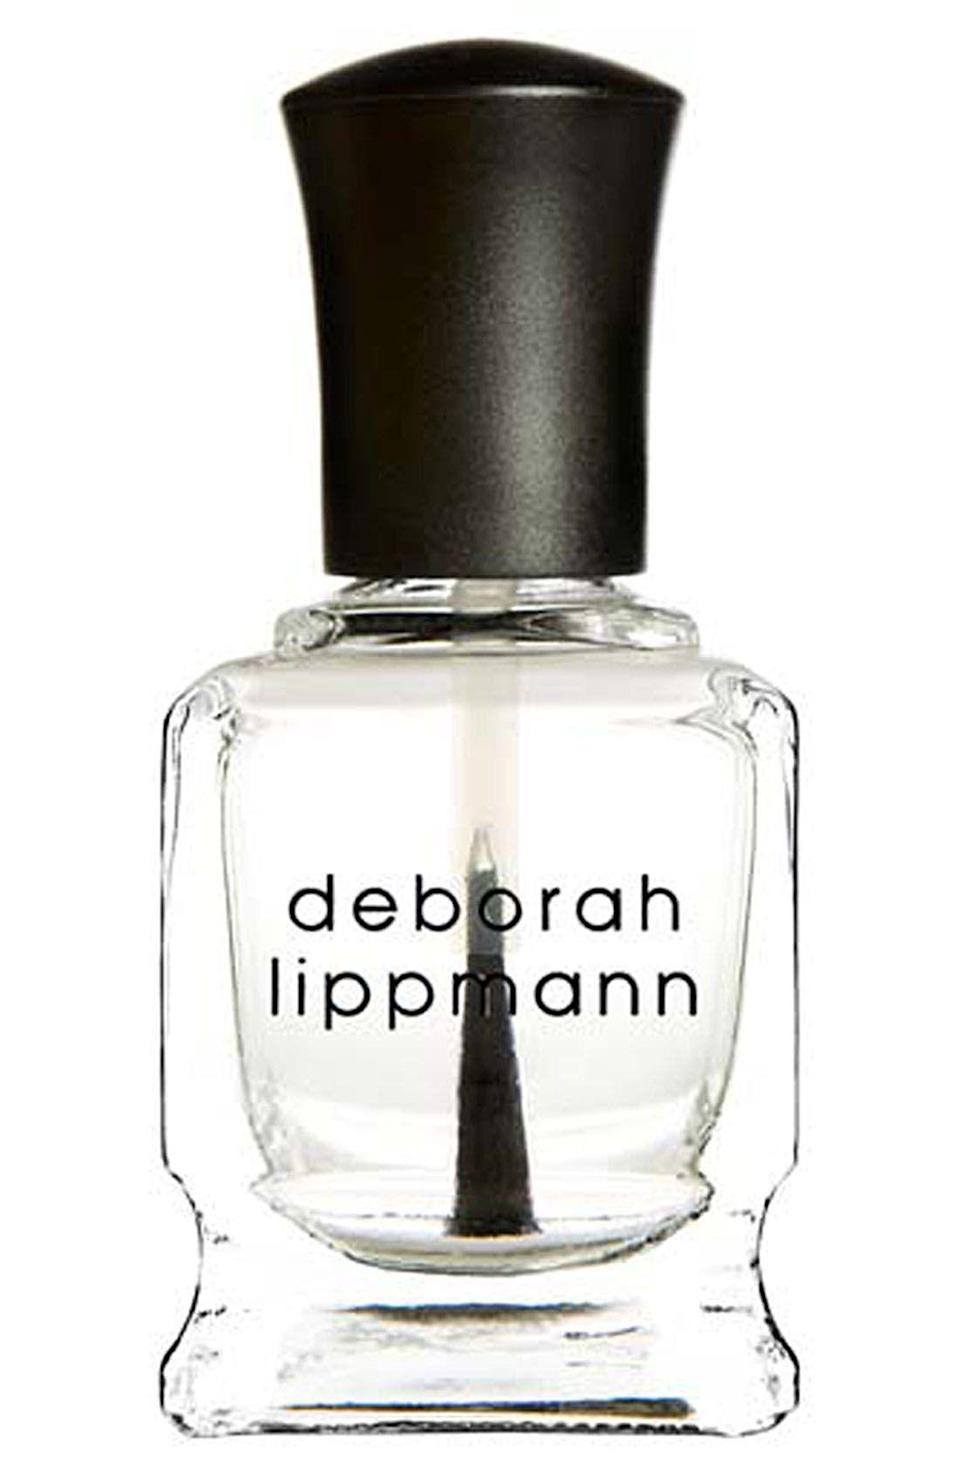 """<p><strong>Deborah Lippmann</strong></p><p>nordstrom.com</p><p><strong>$17.00</strong></p><p><a href=""""https://go.redirectingat.com?id=74968X1596630&url=https%3A%2F%2Fwww.nordstrom.com%2Fs%2Fdeborah-lippmann-hard-rock-hydrating-nail-hardener%2F2859991&sref=https%3A%2F%2Fwww.oprahdaily.com%2Fbeauty%2Fg36209337%2Fbest-nail-strengtheners%2F"""" rel=""""nofollow noopener"""" target=""""_blank"""" data-ylk=""""slk:Shop Now"""" class=""""link rapid-noclick-resp"""">Shop Now</a></p><p>This super versatile option (you can use it as a top or base coat or on bare nails) strengthens and protects with diamond powder and protein. """"This is the one I'd choose if my nails were weak coming out of several months of wearing gel manicures,"""" says Sunshine. </p>"""